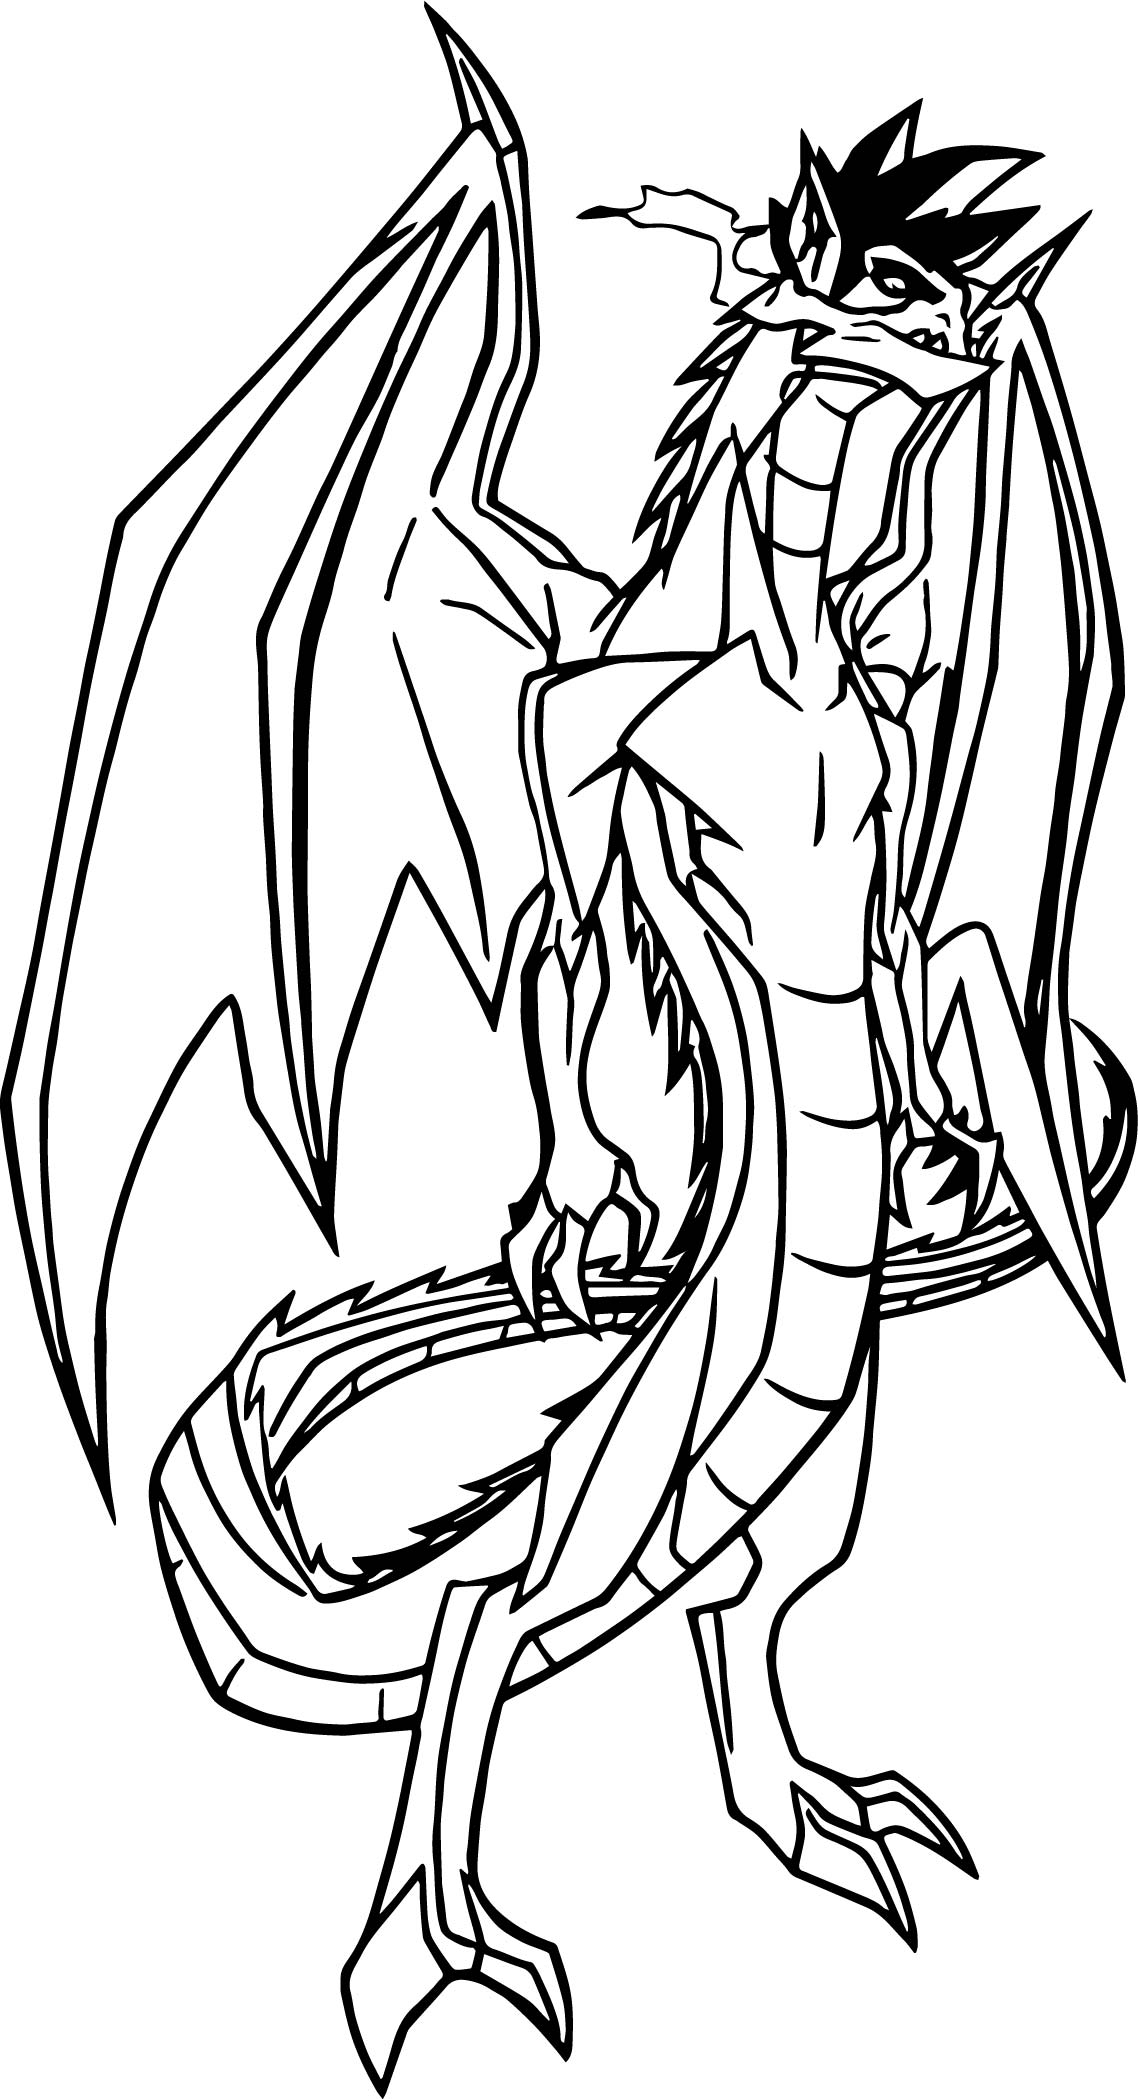 American Dragon Genrex Style Coloring Page